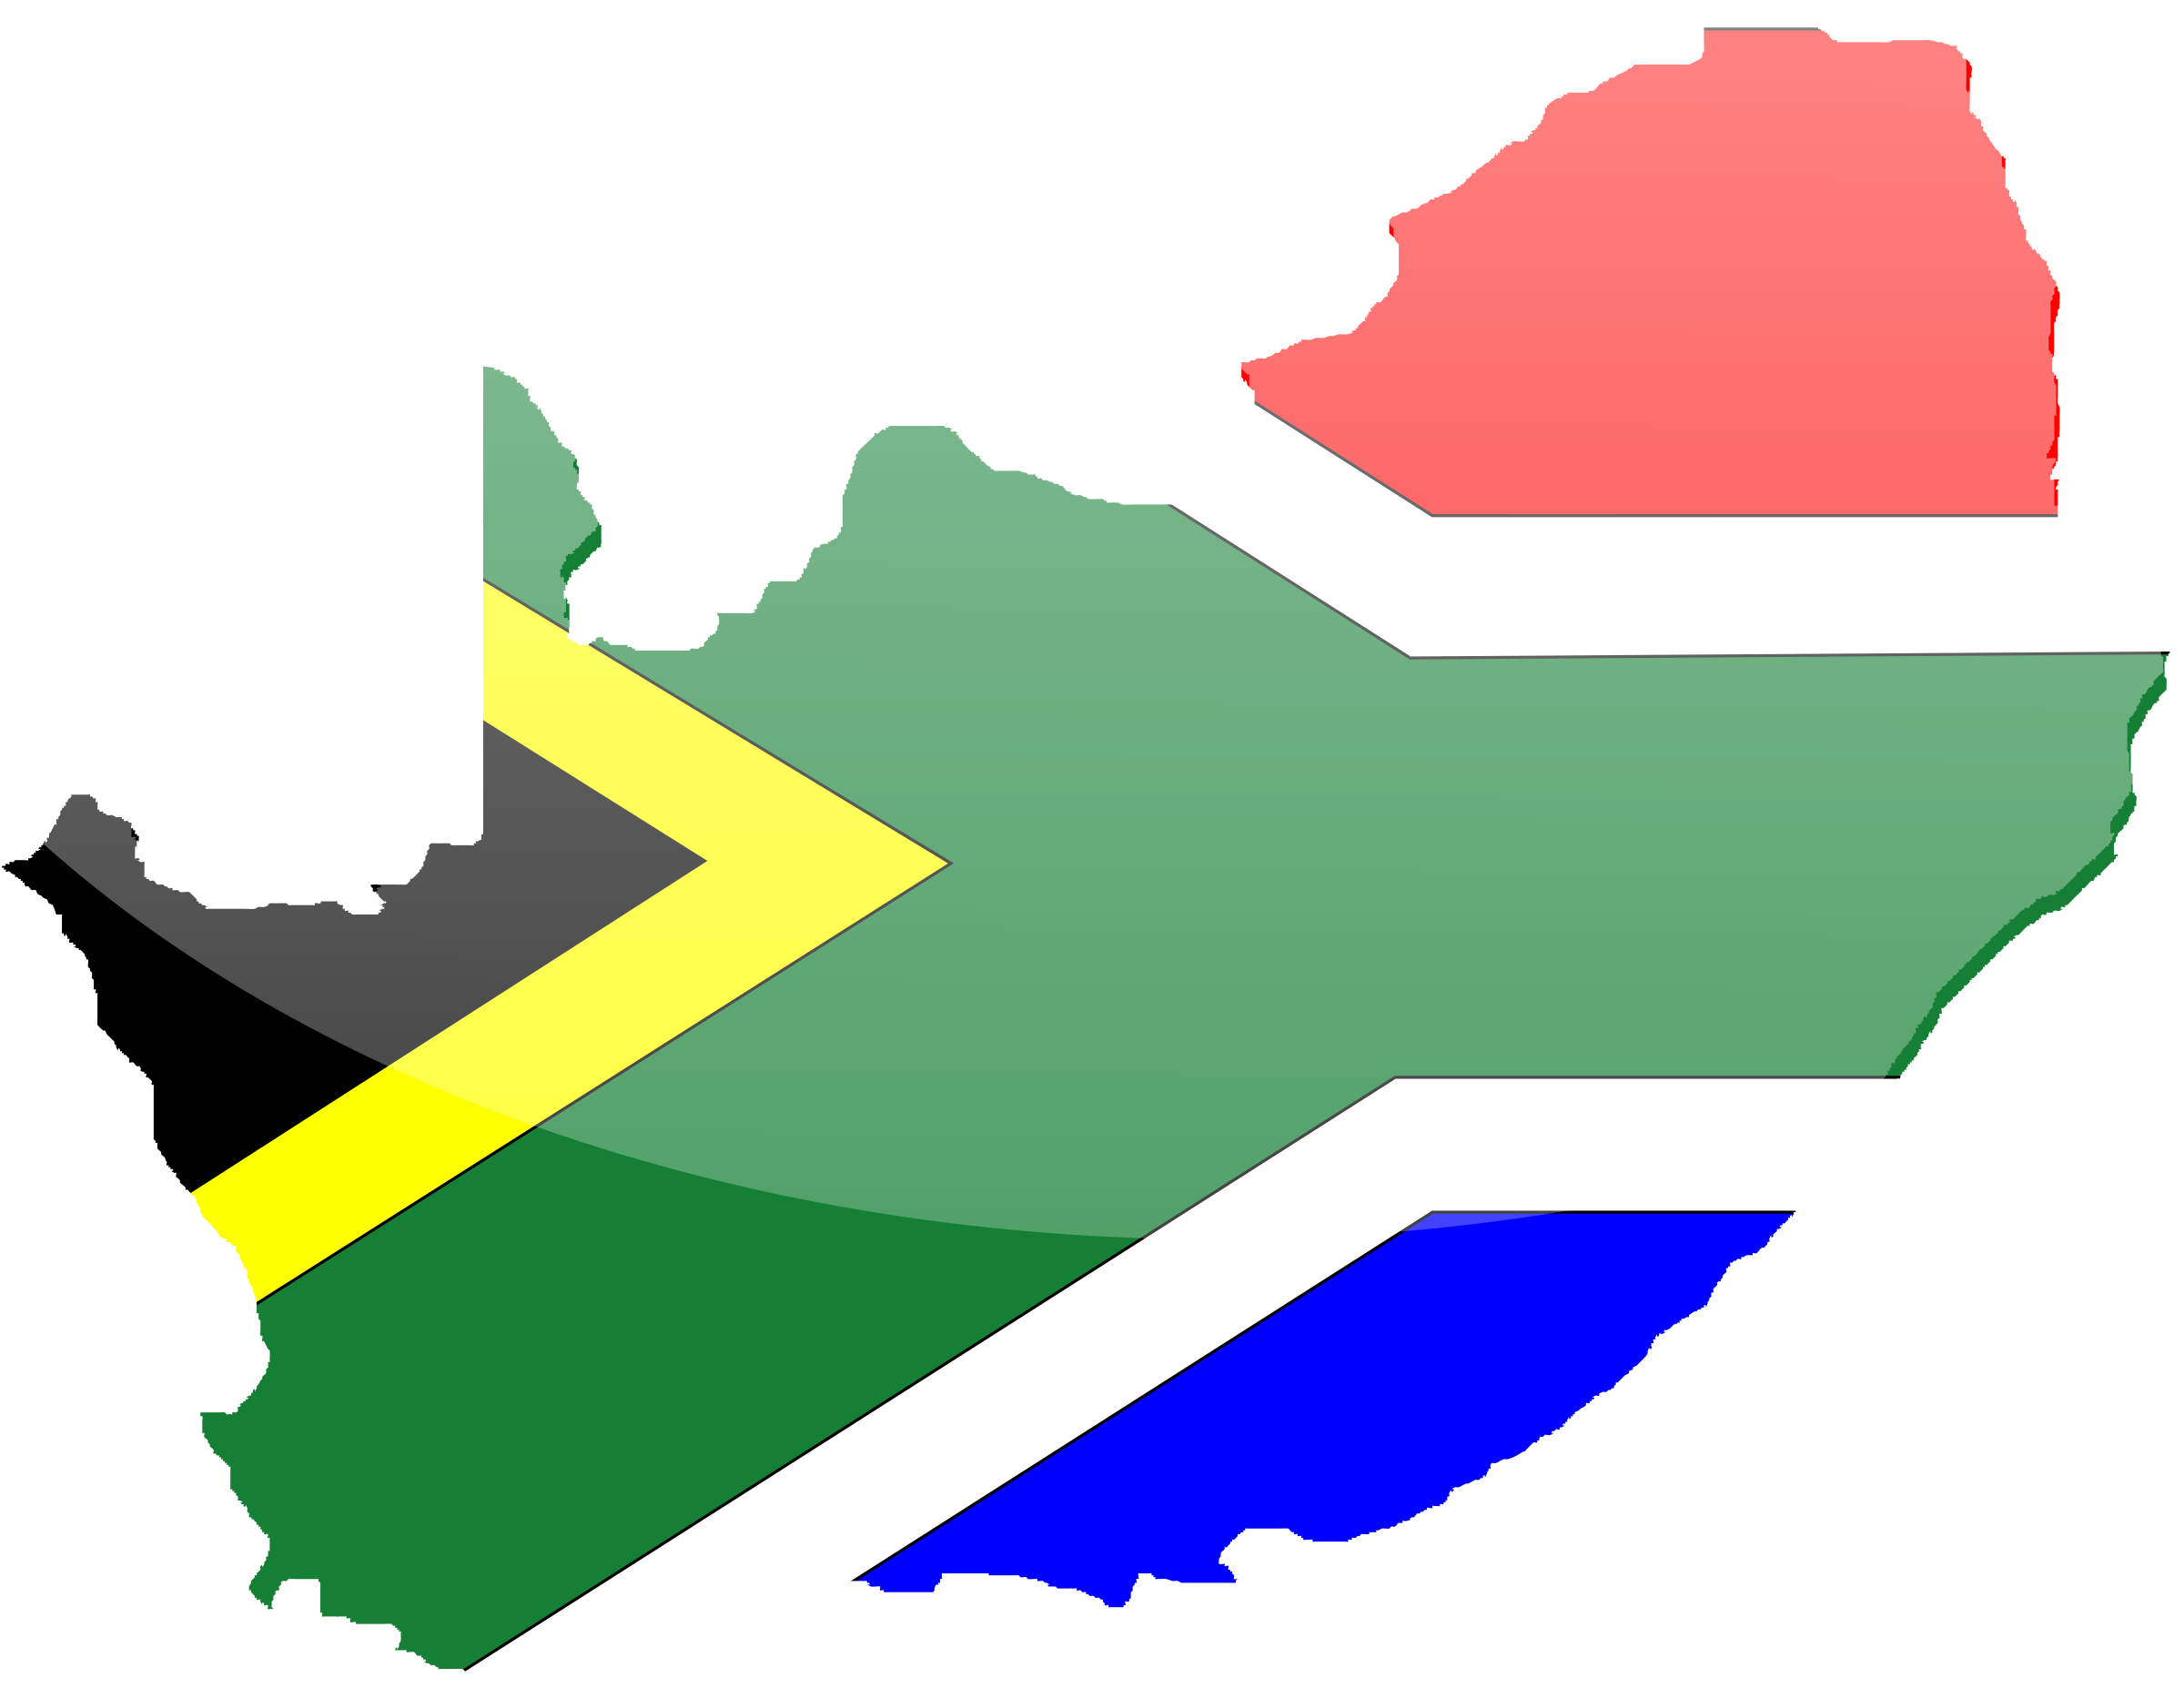 South africa png. African flag icons free